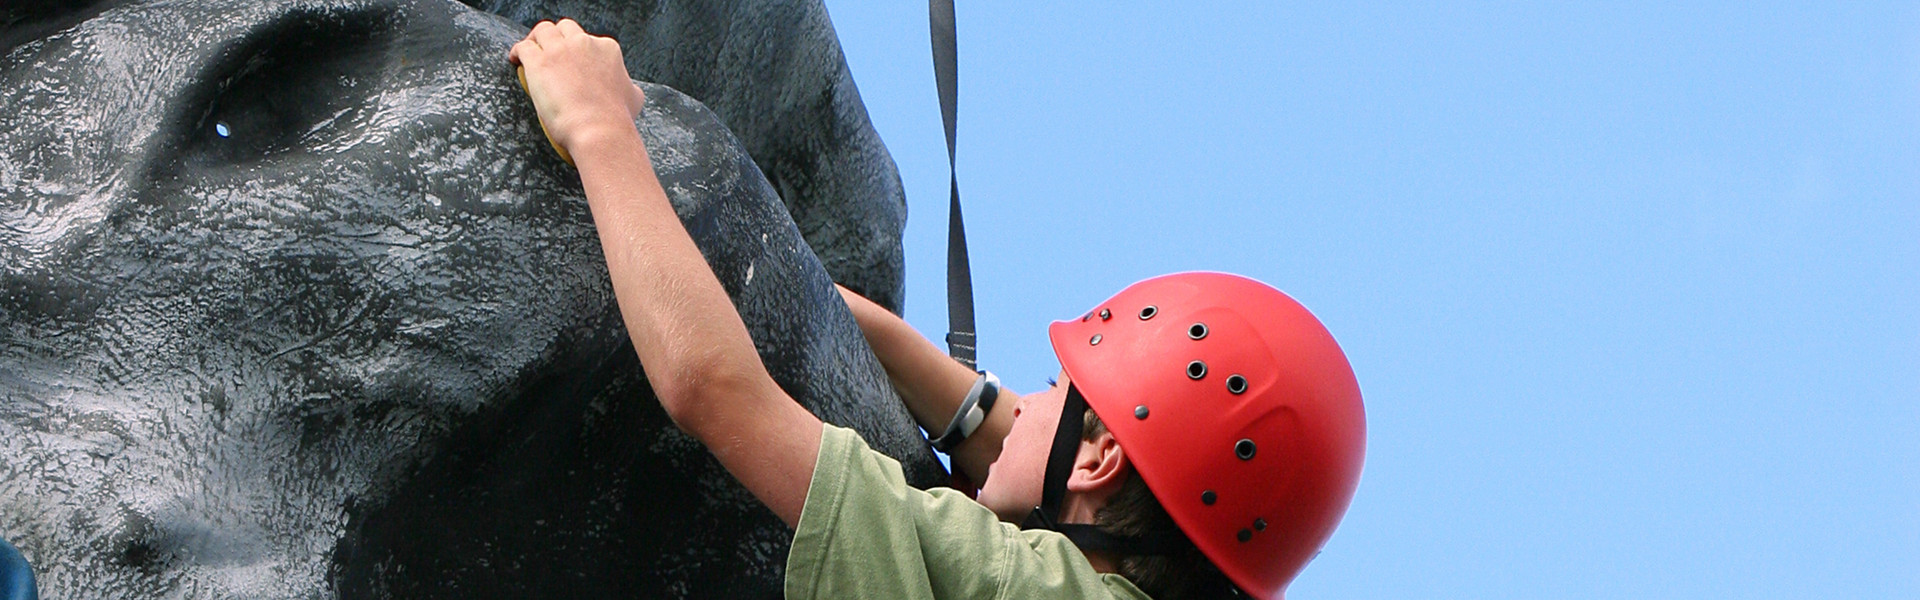 The Rock Climbing Wall at Westgate River Ranch Resort & Rodeo provides challenges for all ability levels. Enjoy the thrill of rock climbing in a safe and controlled environment assisted by our knowledgeable, trained staff.